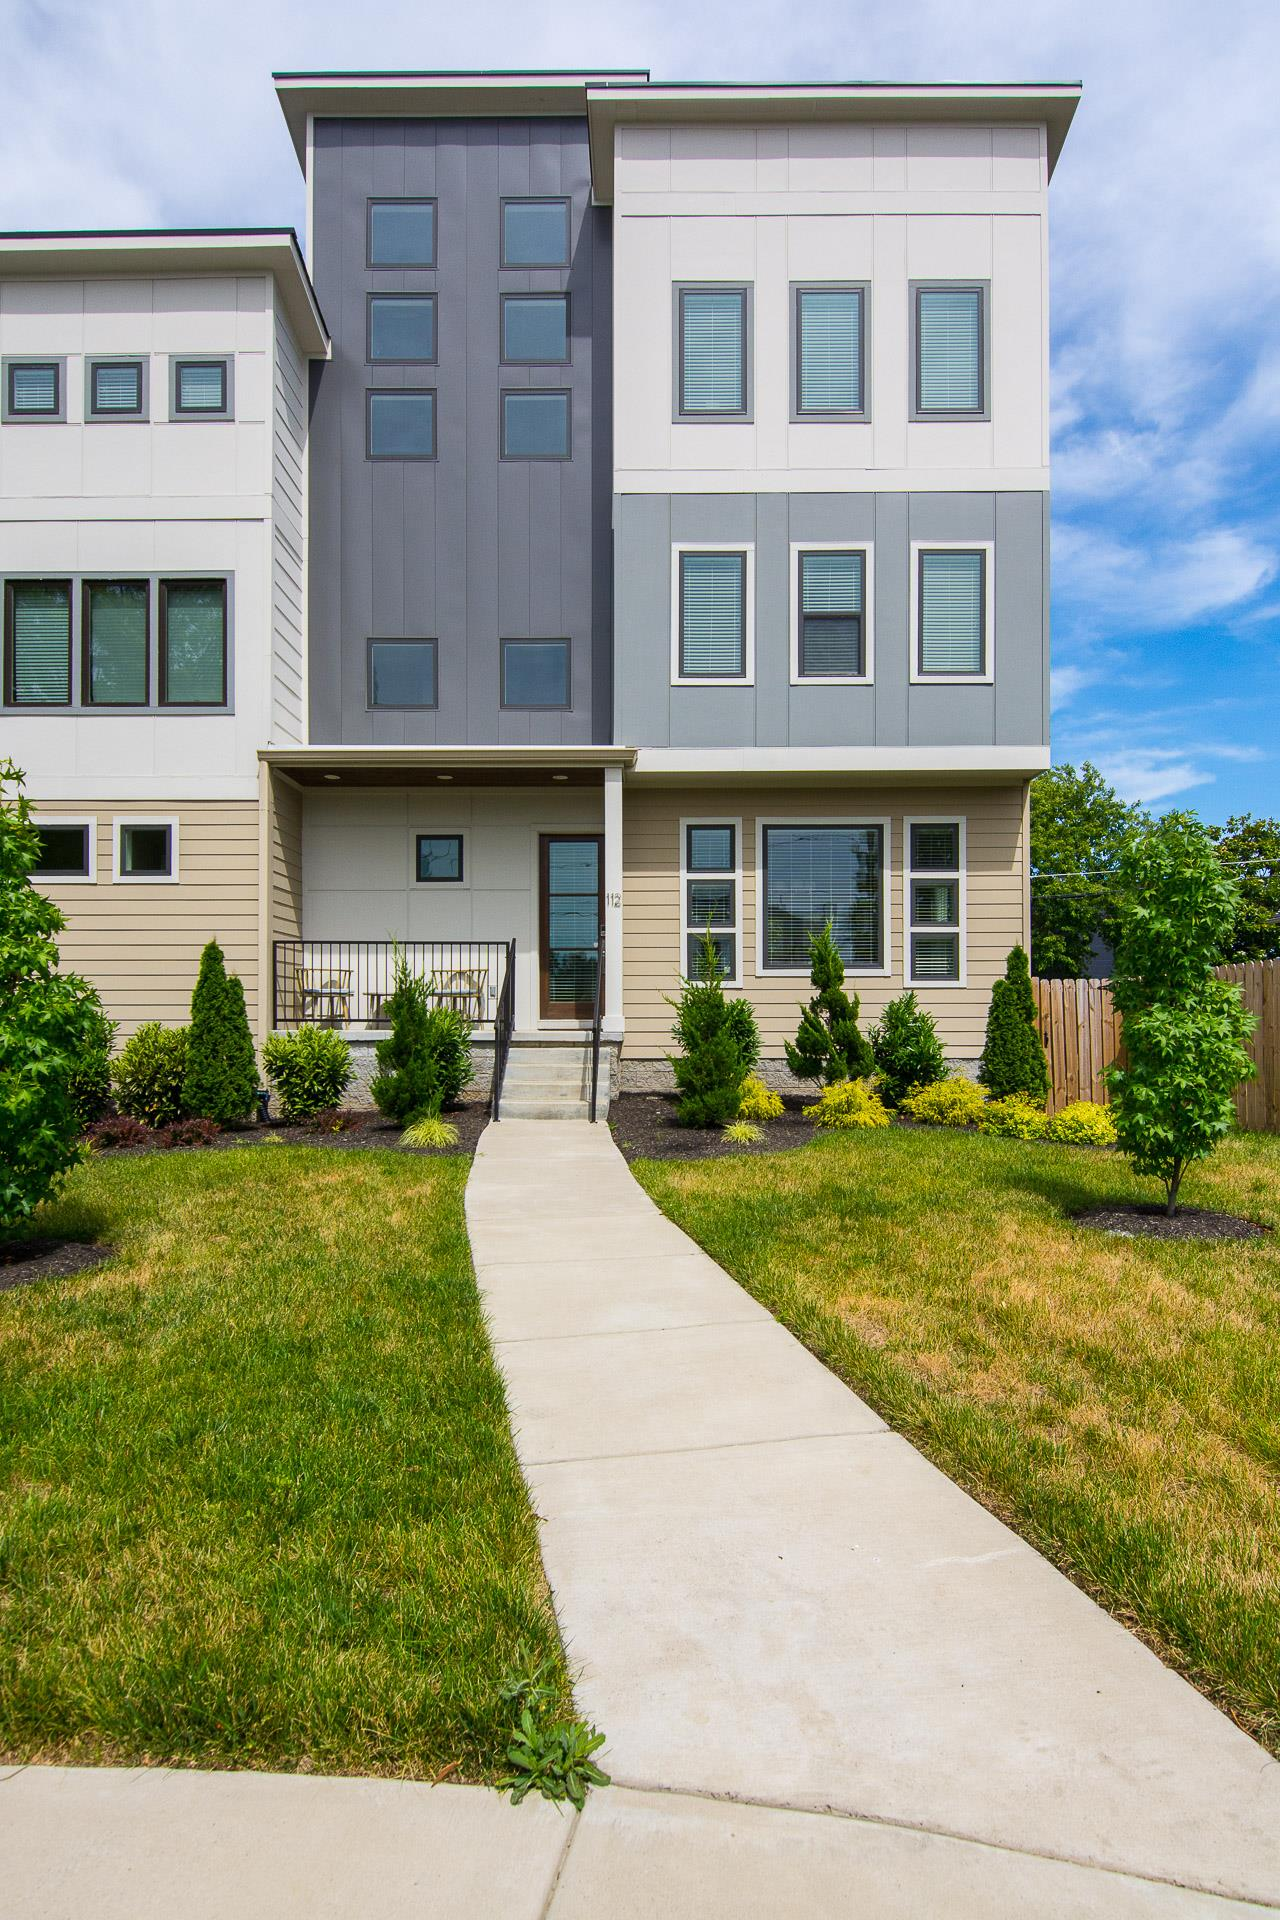 112 9th Circle South, S, Nashville - Midtown, Tennessee